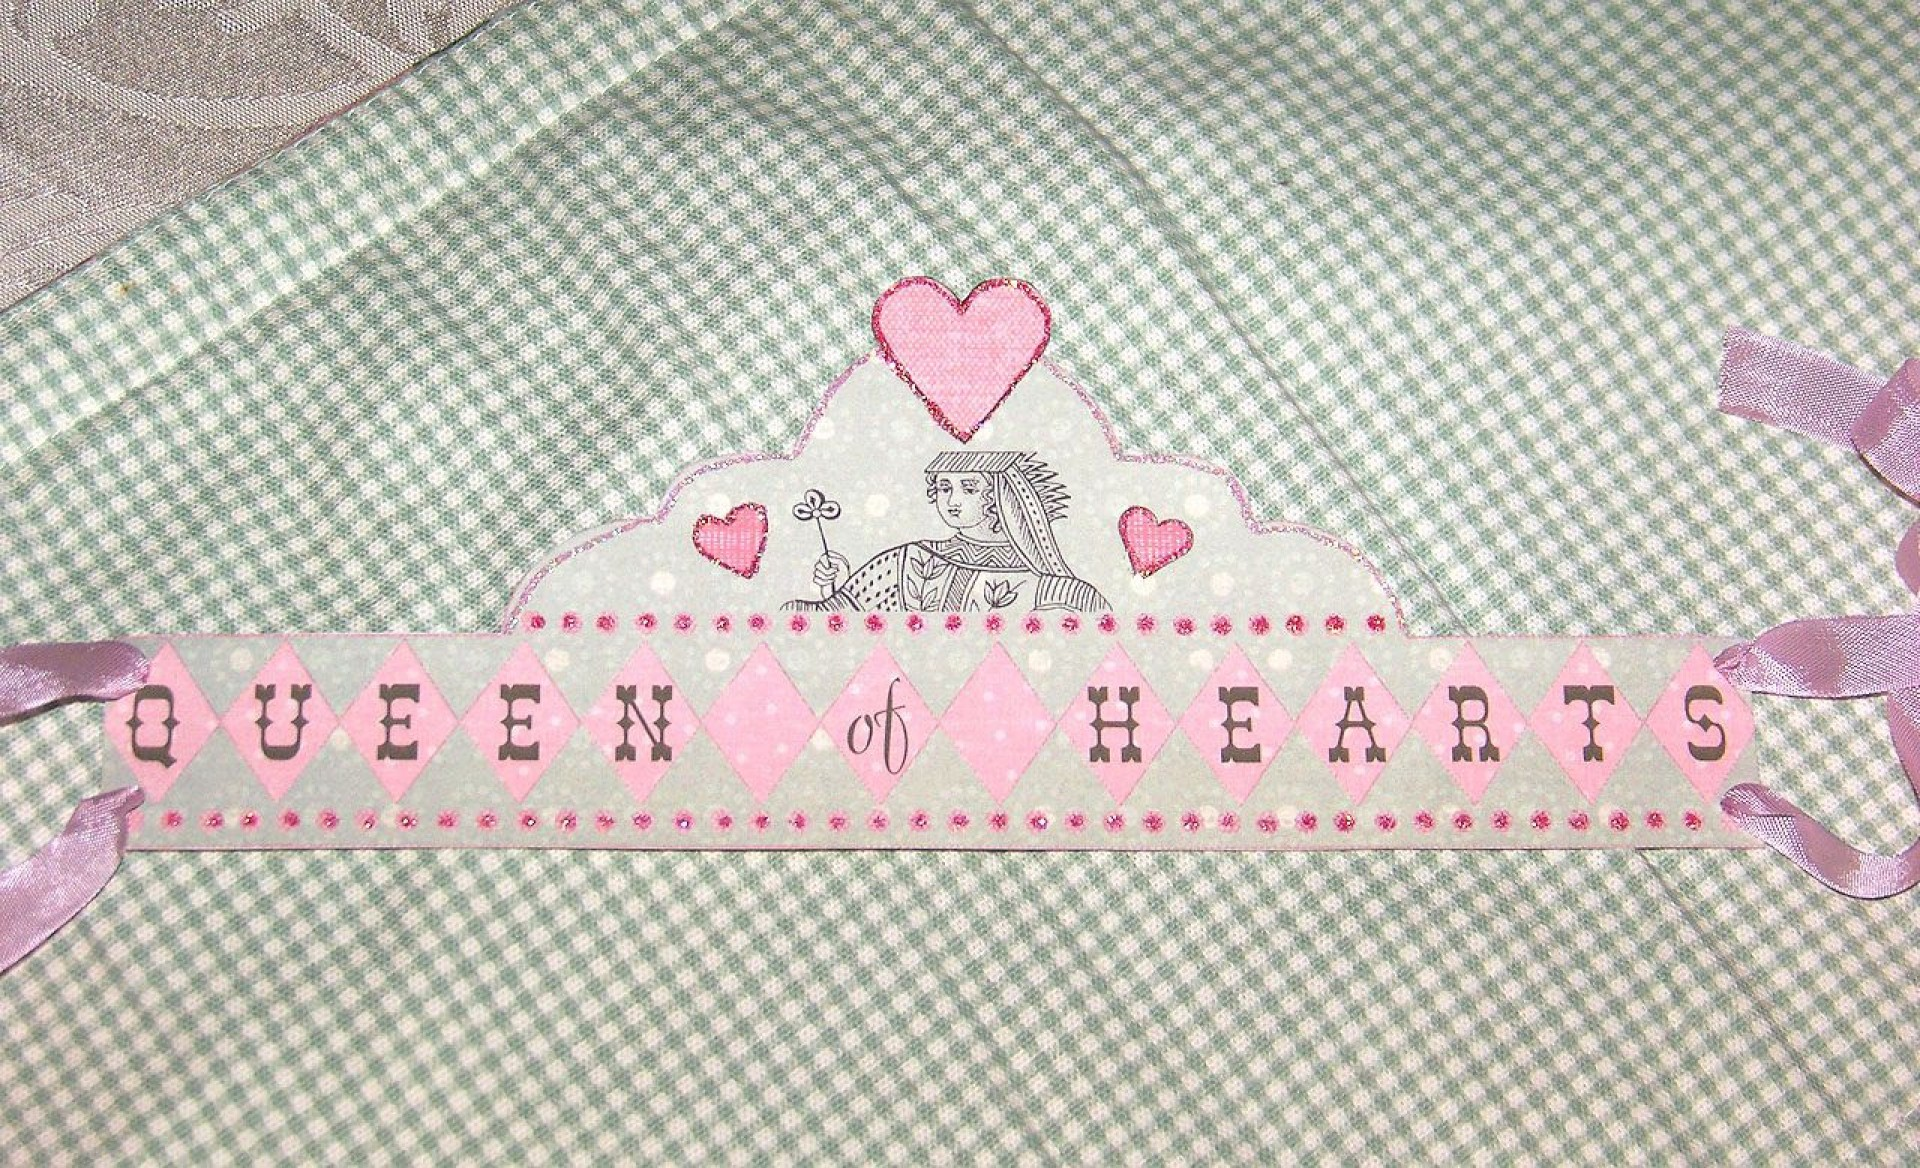 010 Simple Queen Of Heart Crown Printable Idea  Template1920